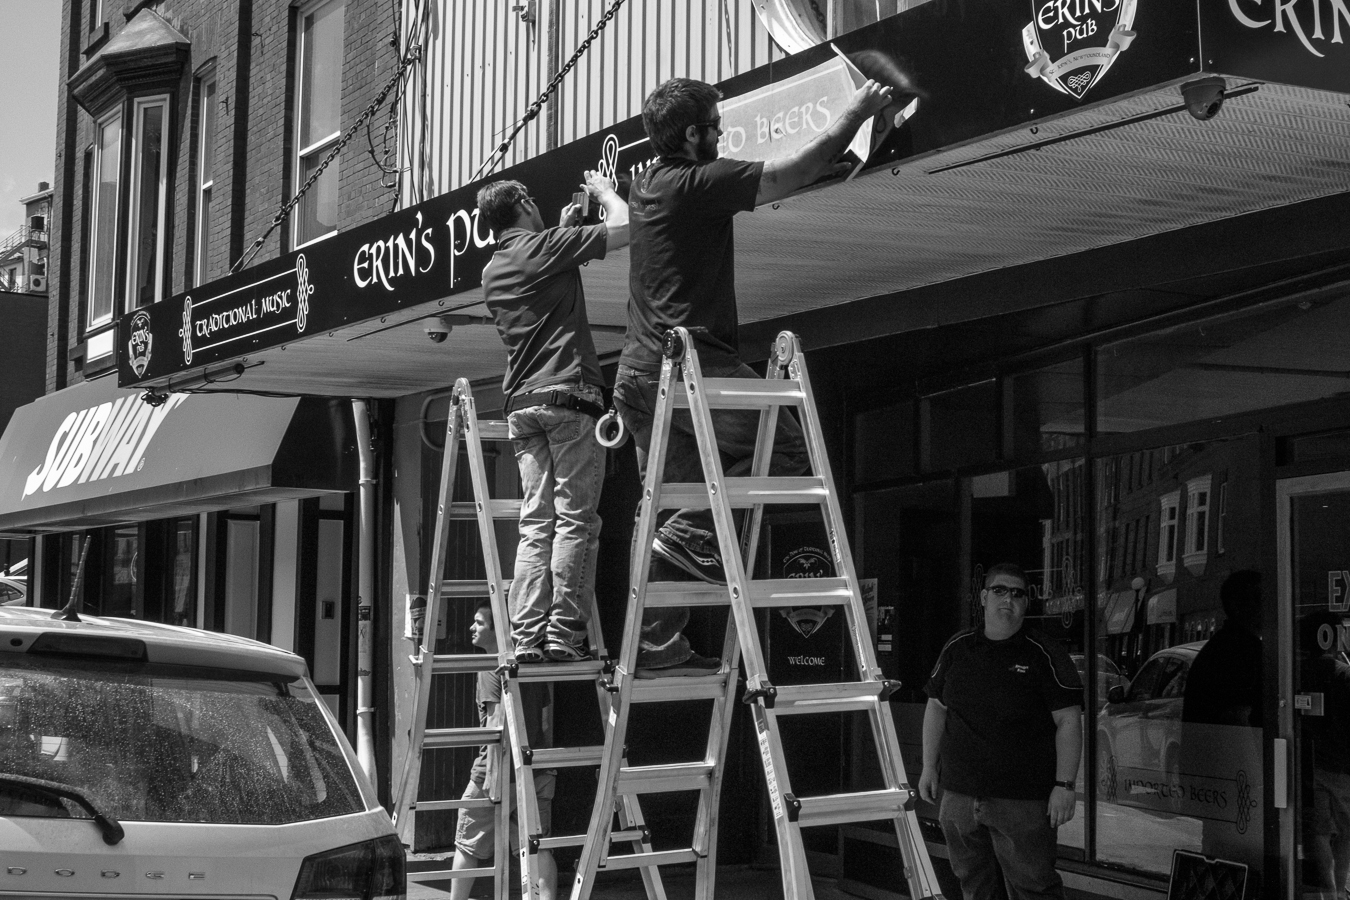 Sign workers installing new lettering. - Erins Pub - Water Street